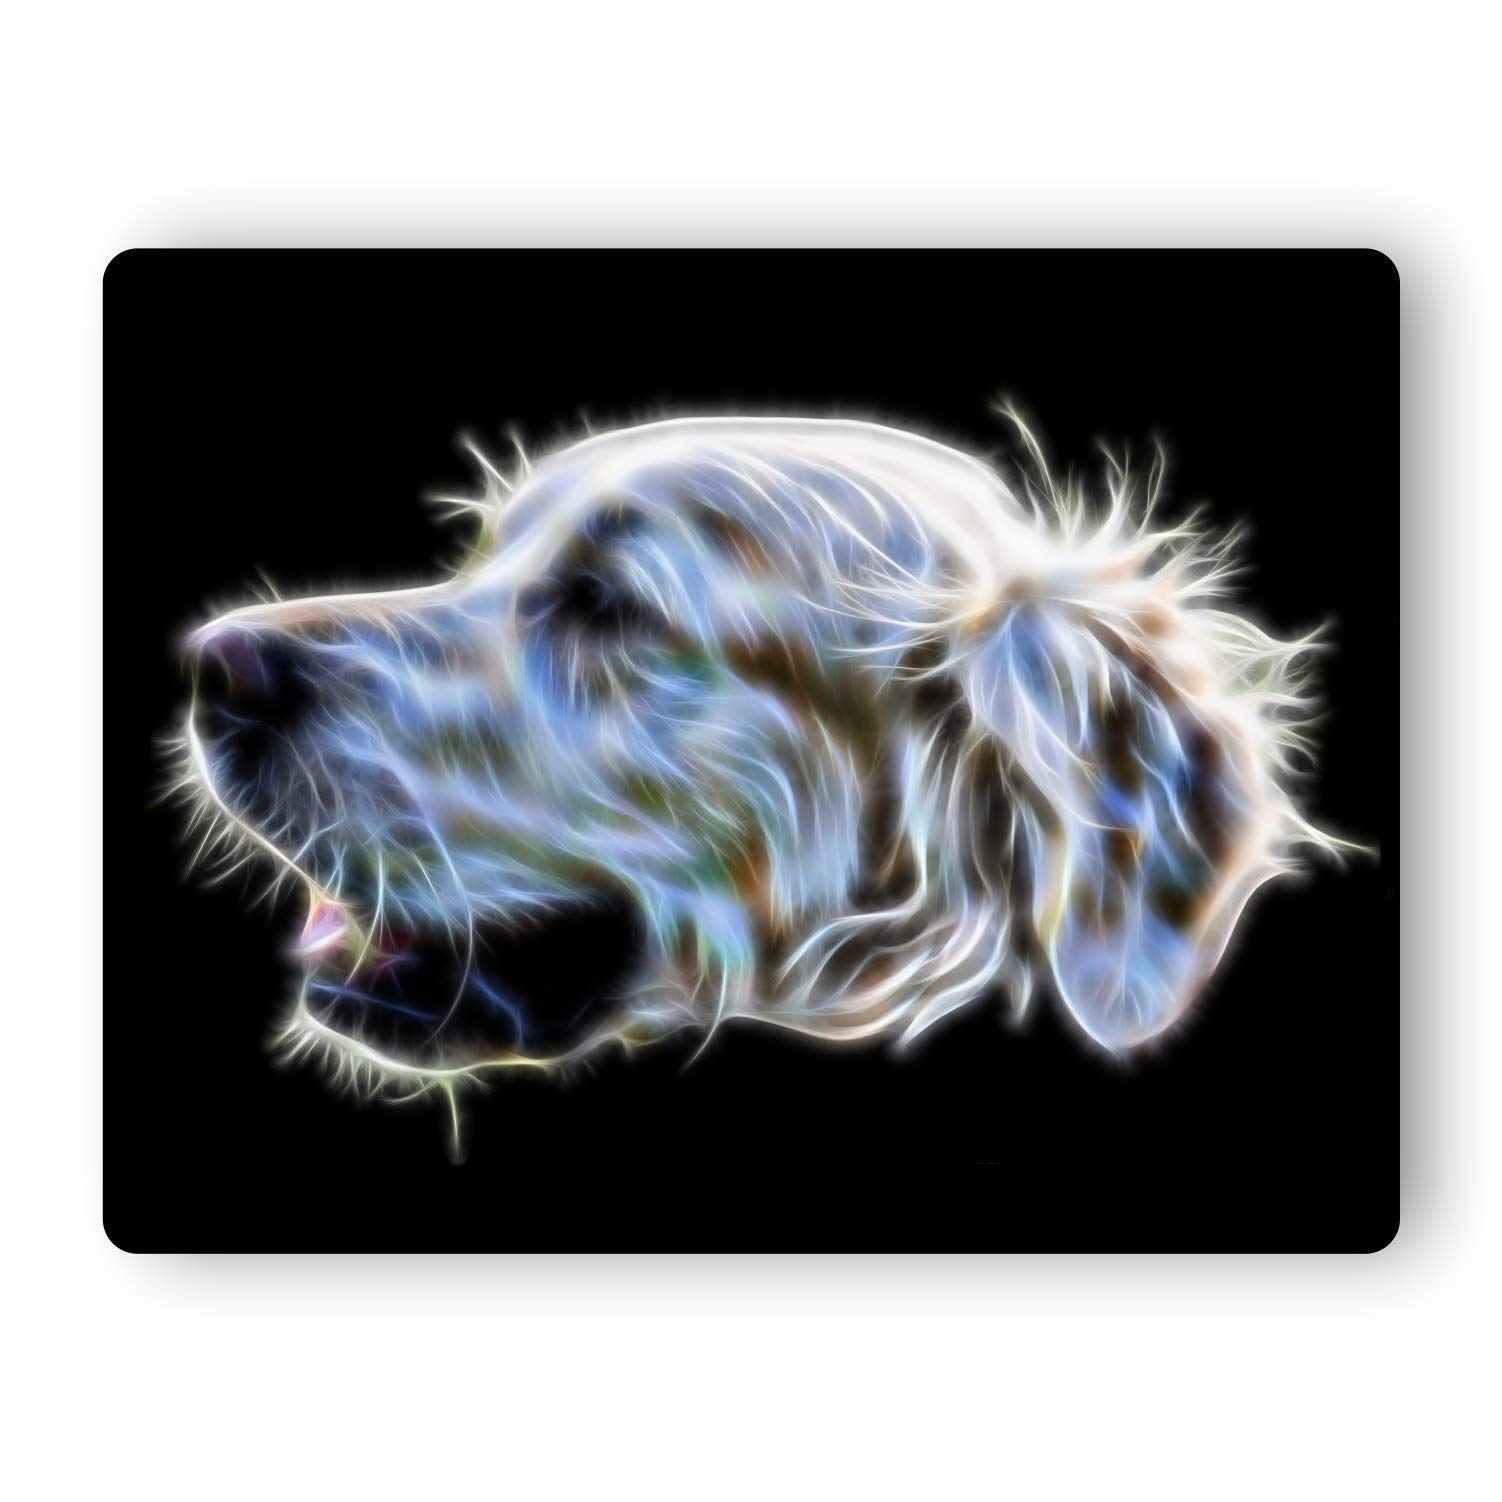 Fractal Artworks Aluminium Metal Wall Plaque with Stunning Dog Fractal Art Design